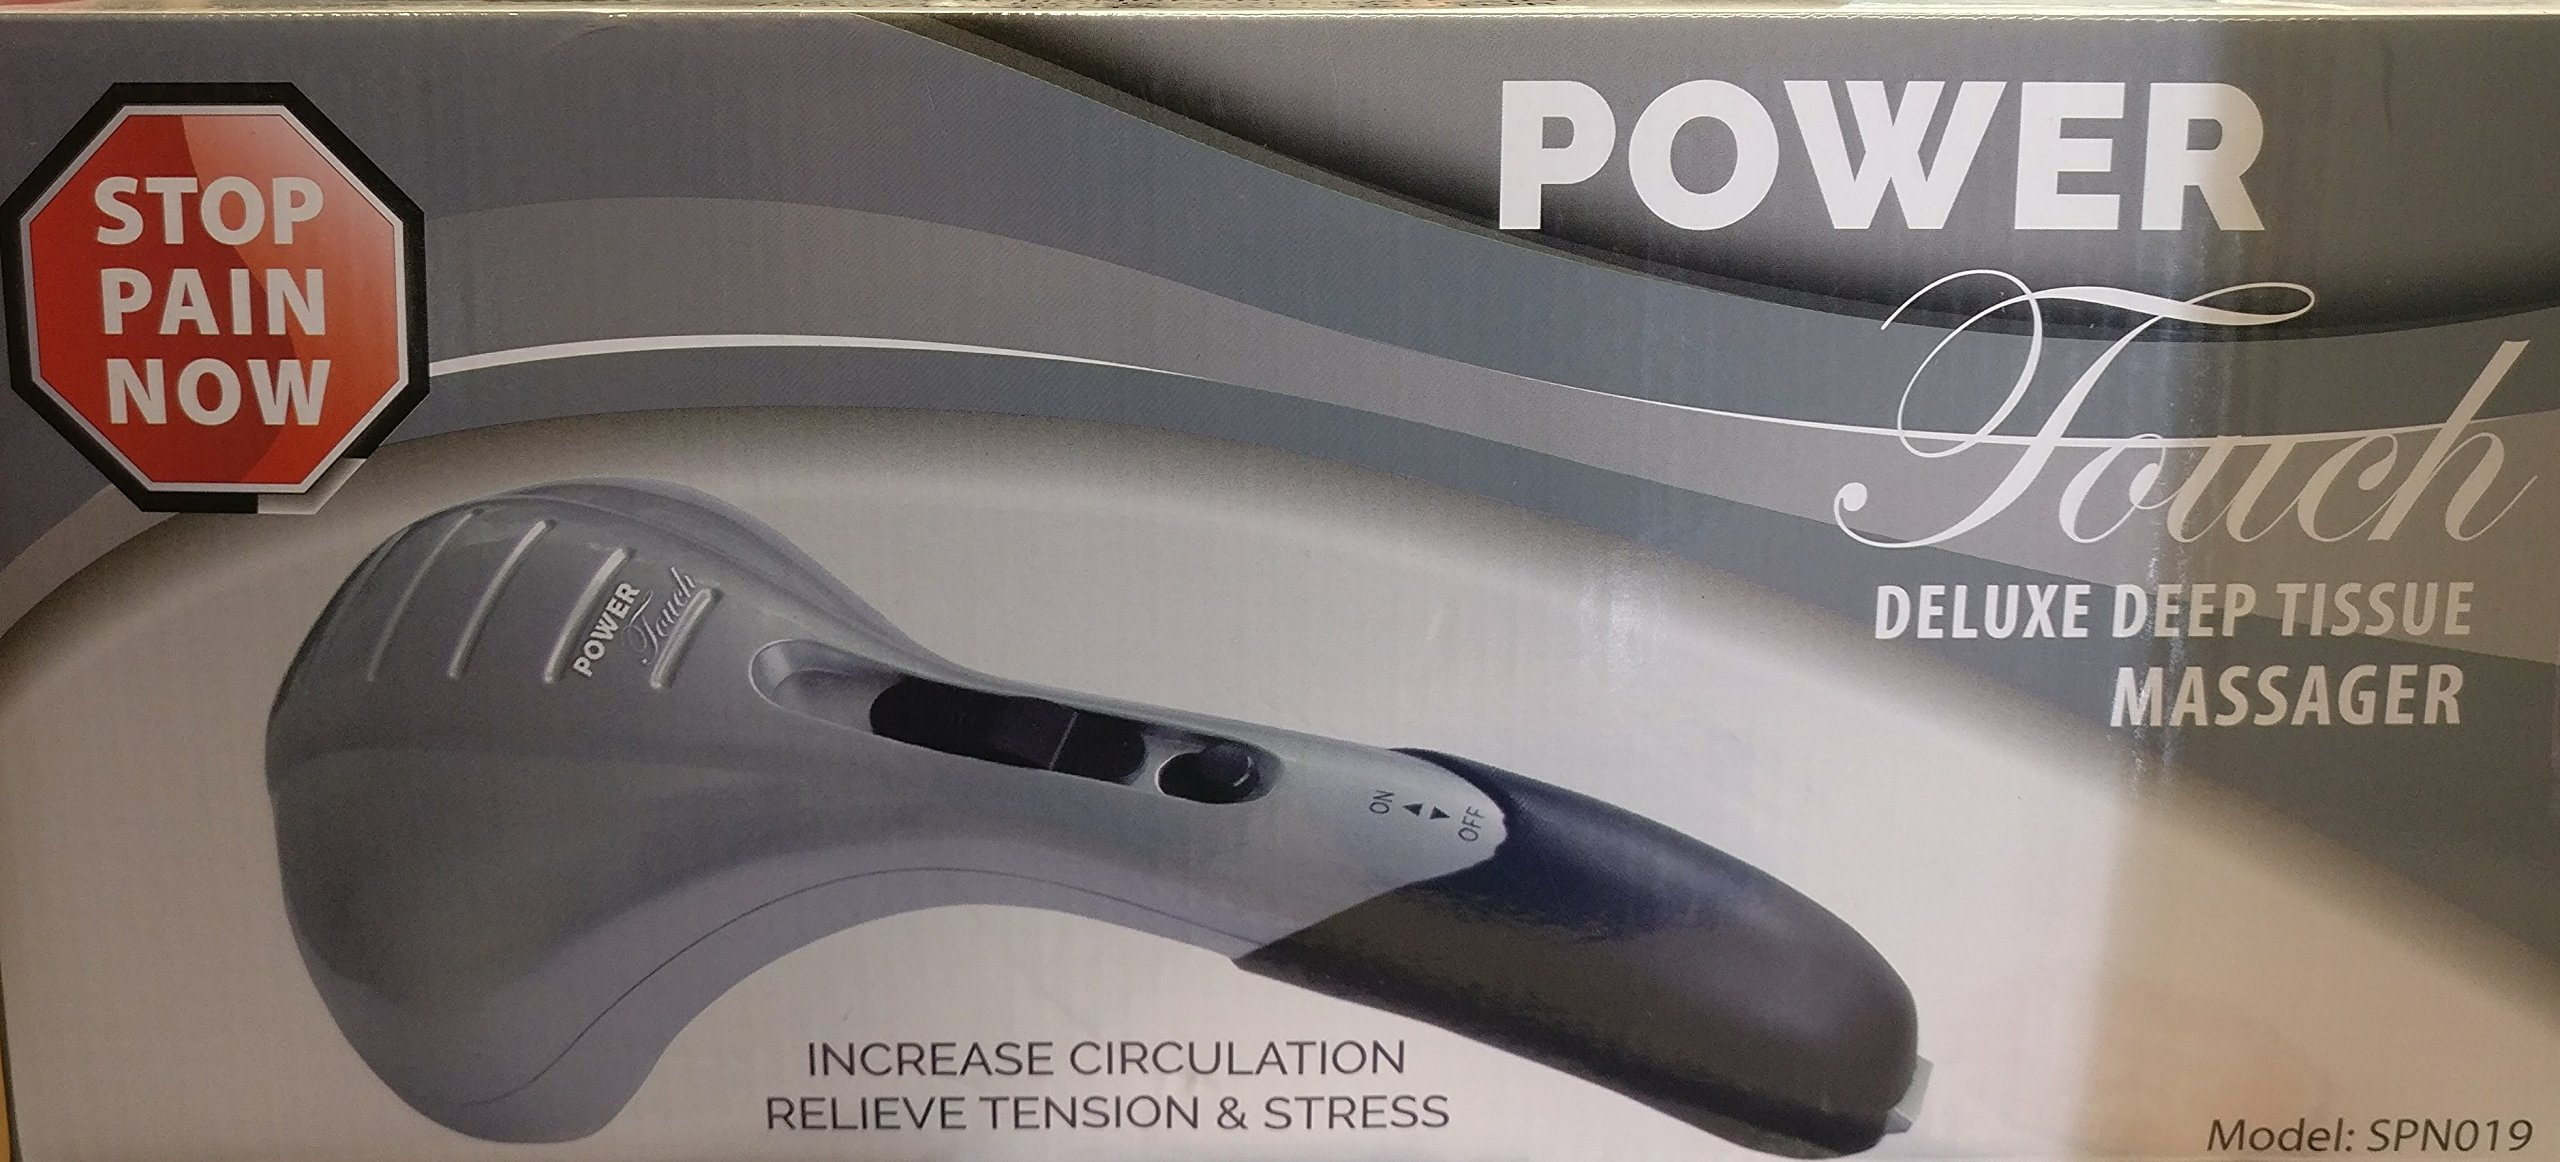 Power Touch Deluxe Deep Tissue Massager Silver